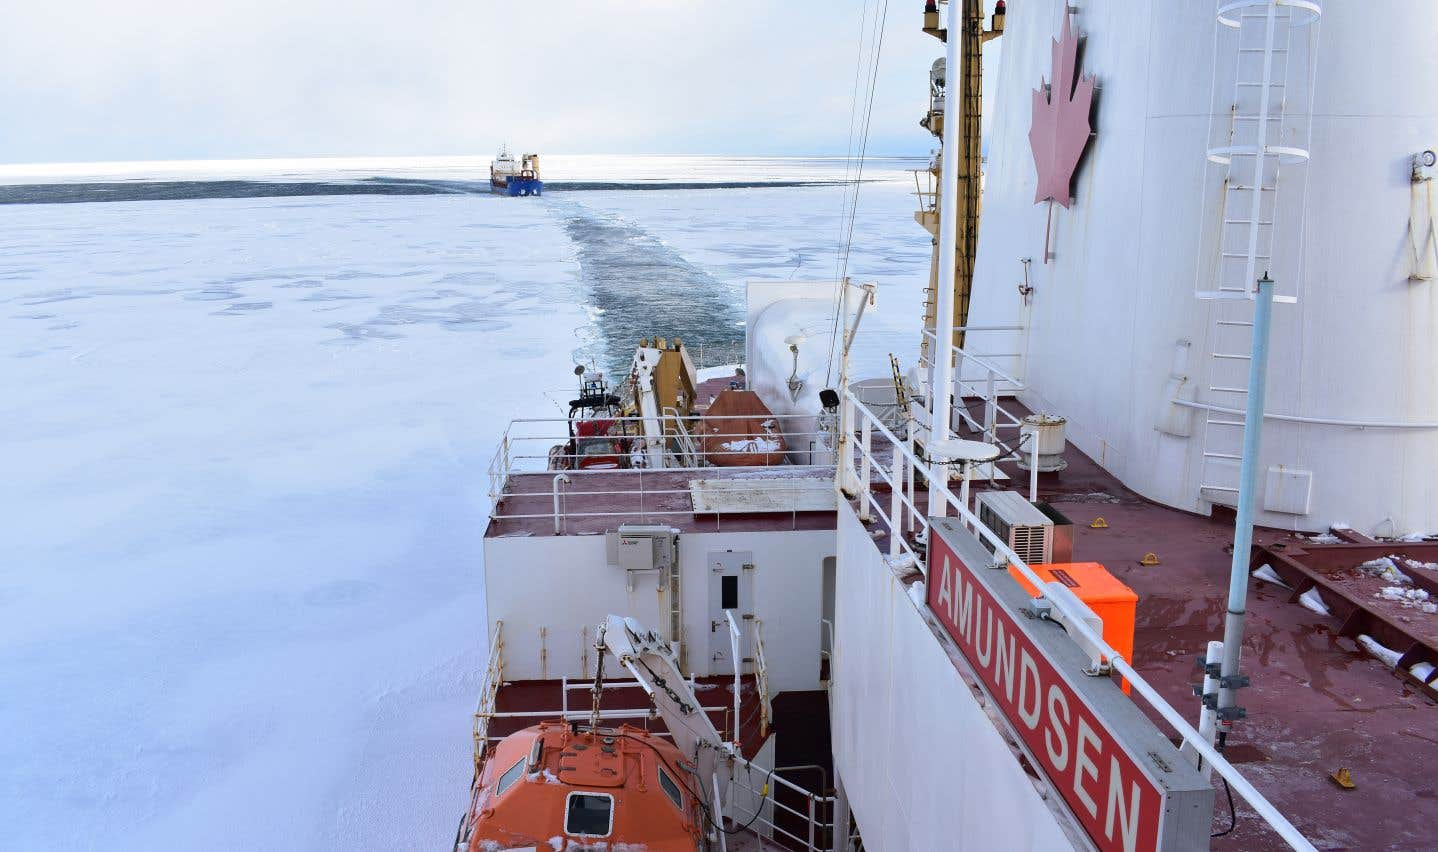 En plus de la mission scientifique, l'«Amundsen» doit poursuivre l'escorte de navires.